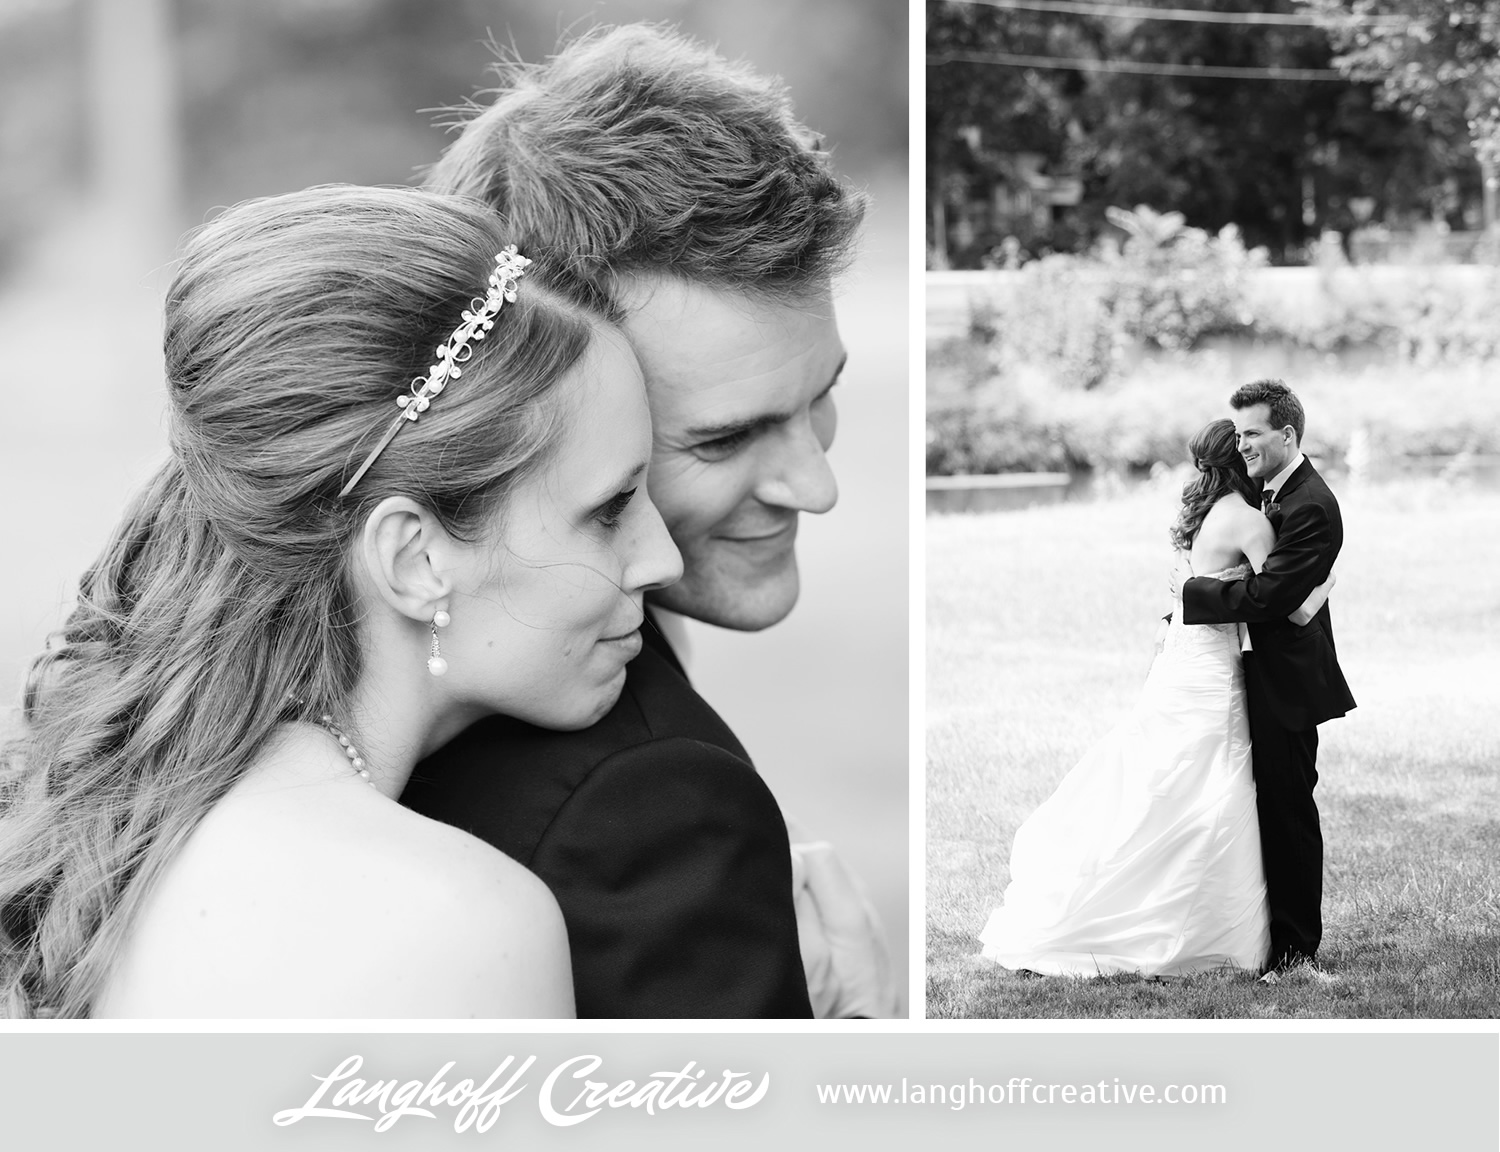 PlainfieldWedding-2013-LanghoffCreative-MattErin-10-photo.jpg